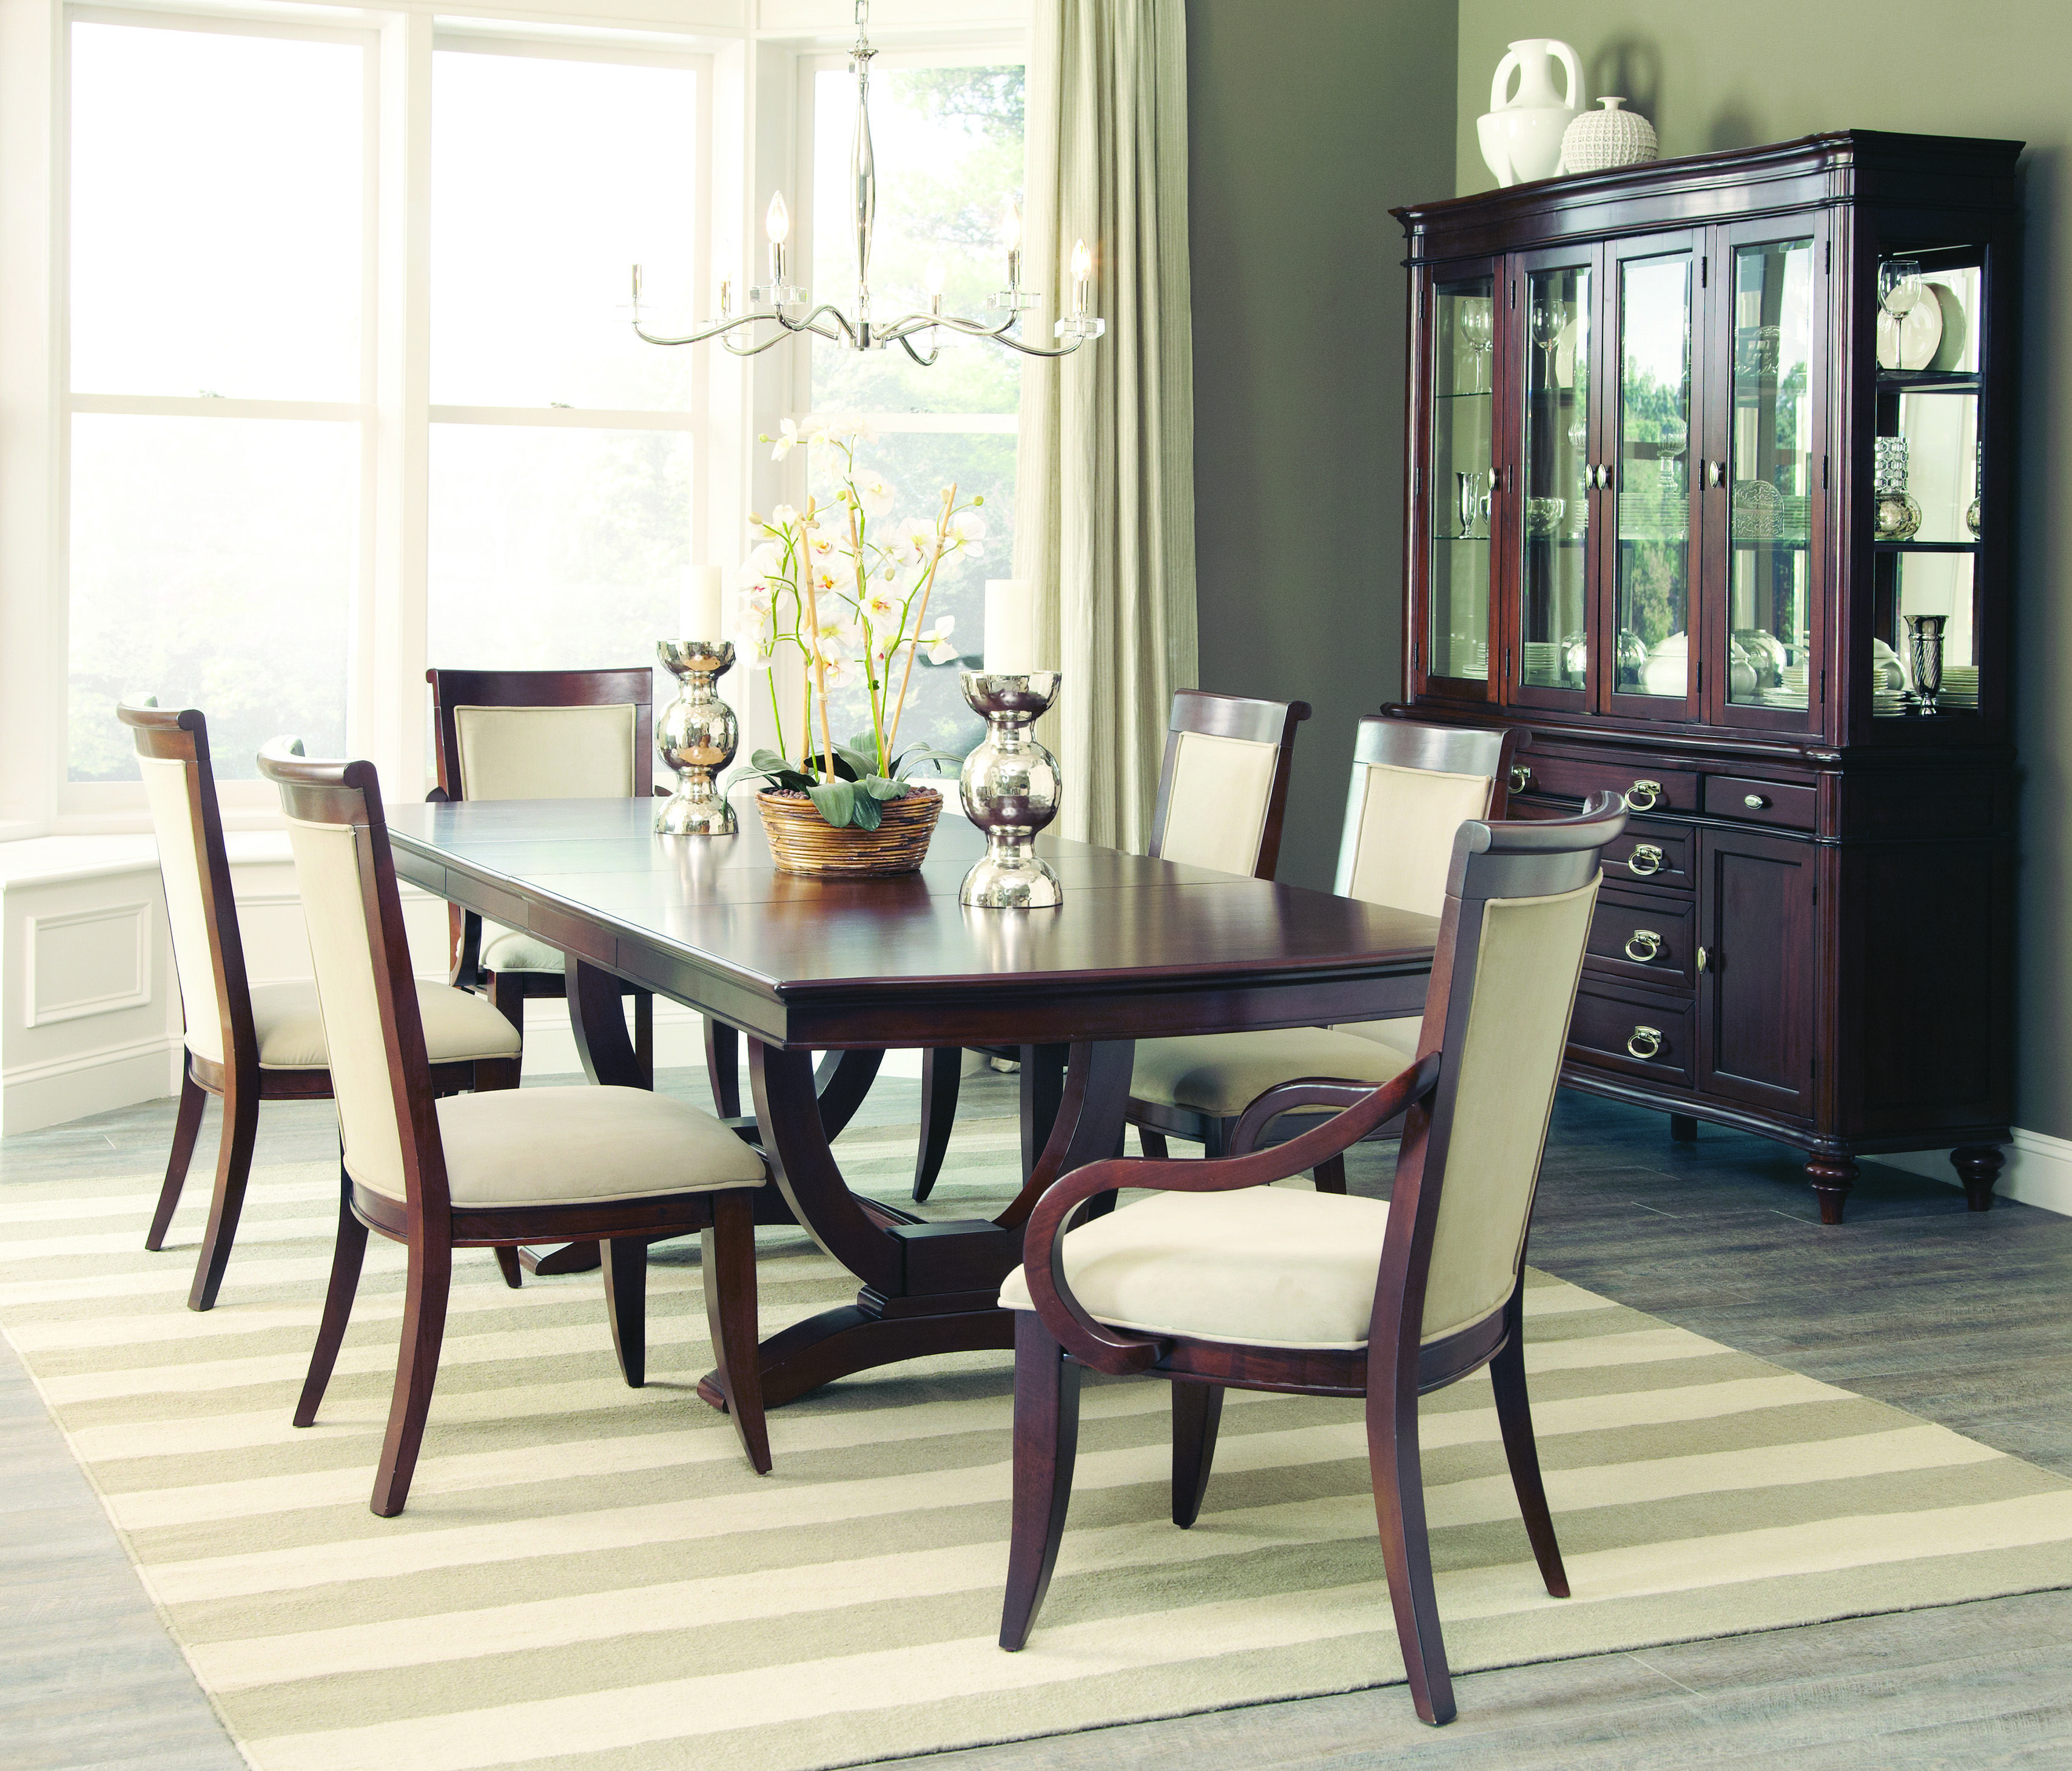 Everyday Dining At Its Best The Alyssa Collection Is A Modern Classic Design That